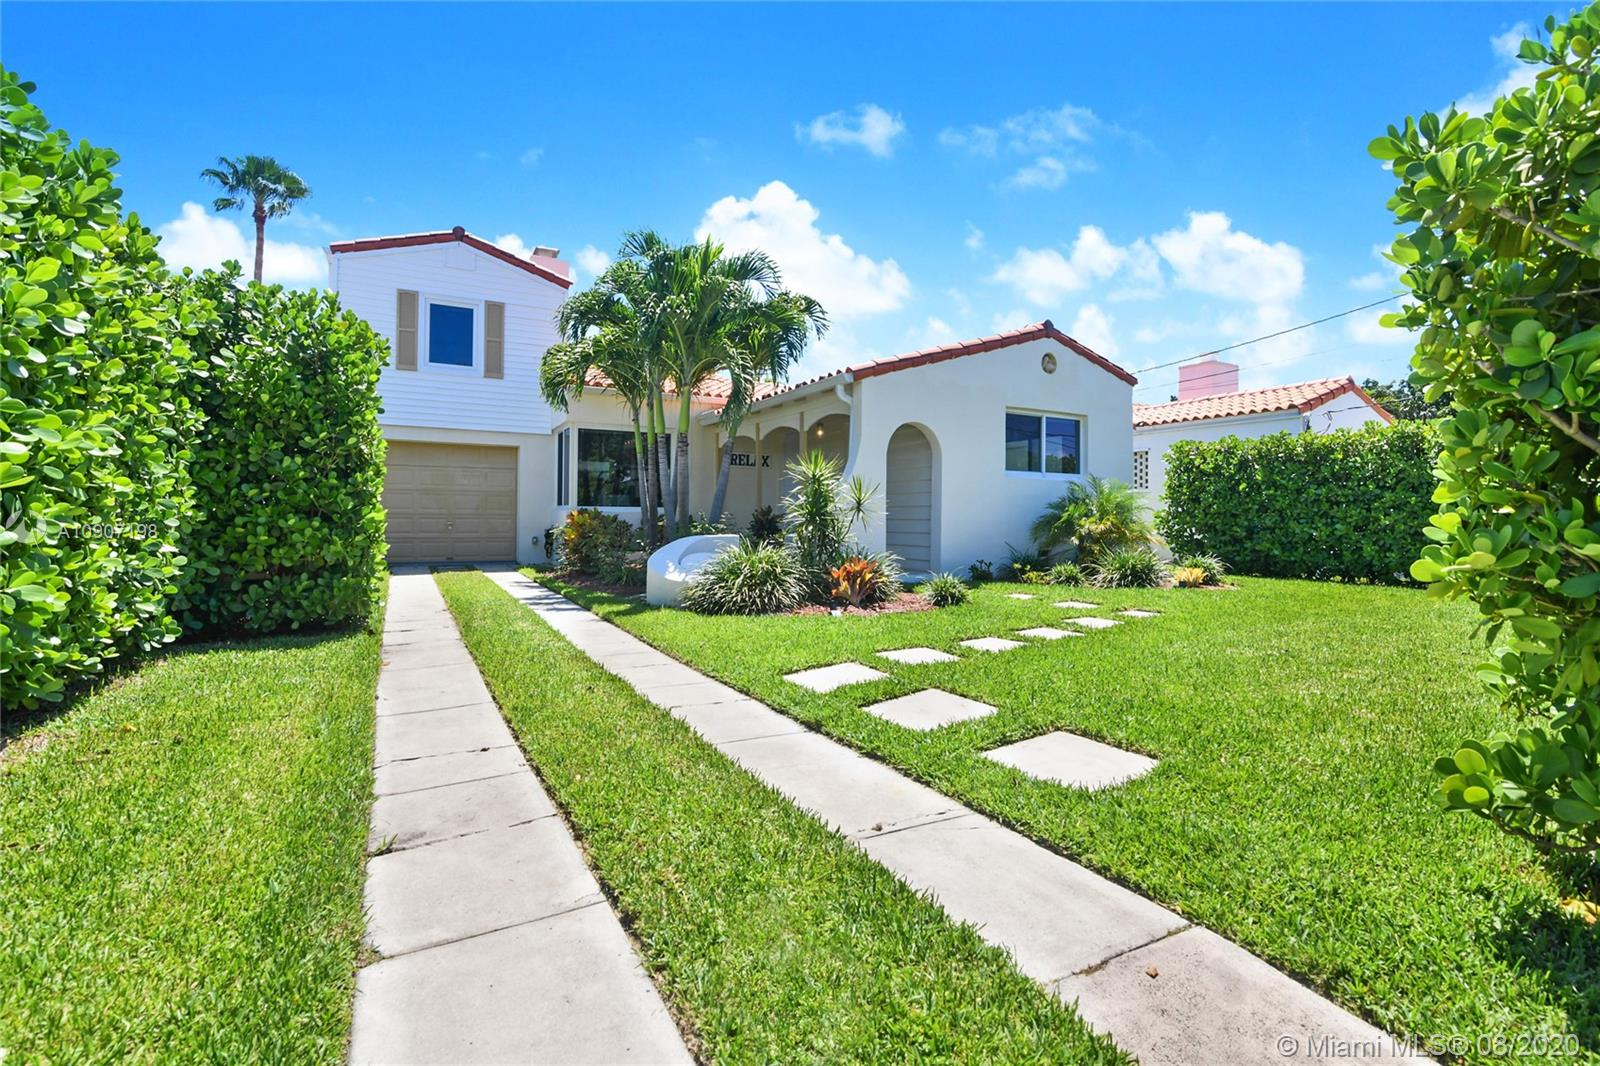 Normandy Beach - 8827 Carlyle Ave, Surfside, FL 33154